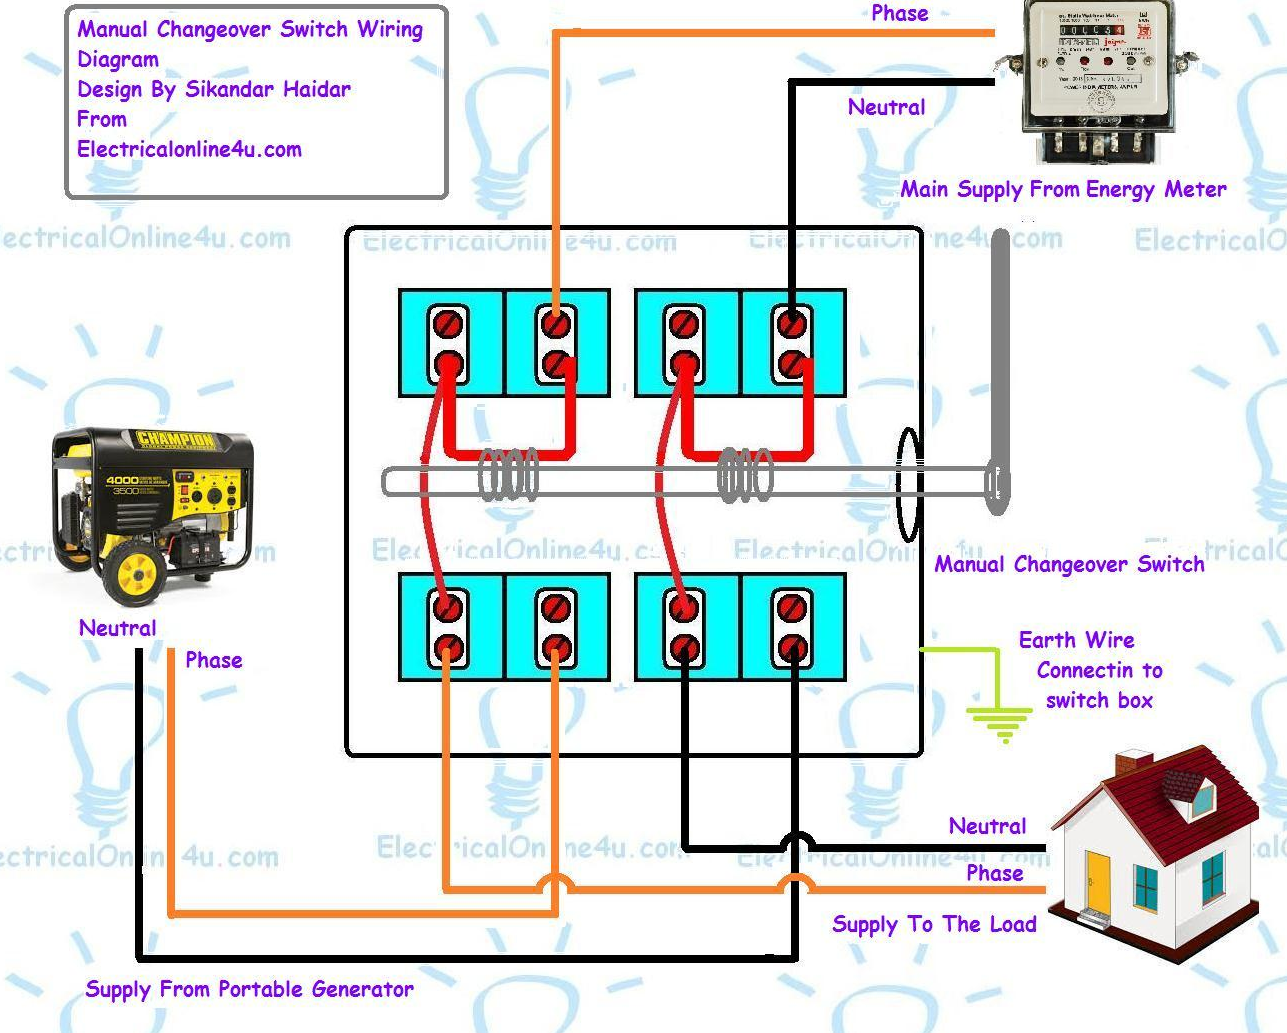 Home Wiring Diagram Maker Basic Guide House Software Best Electrical Images Gallery